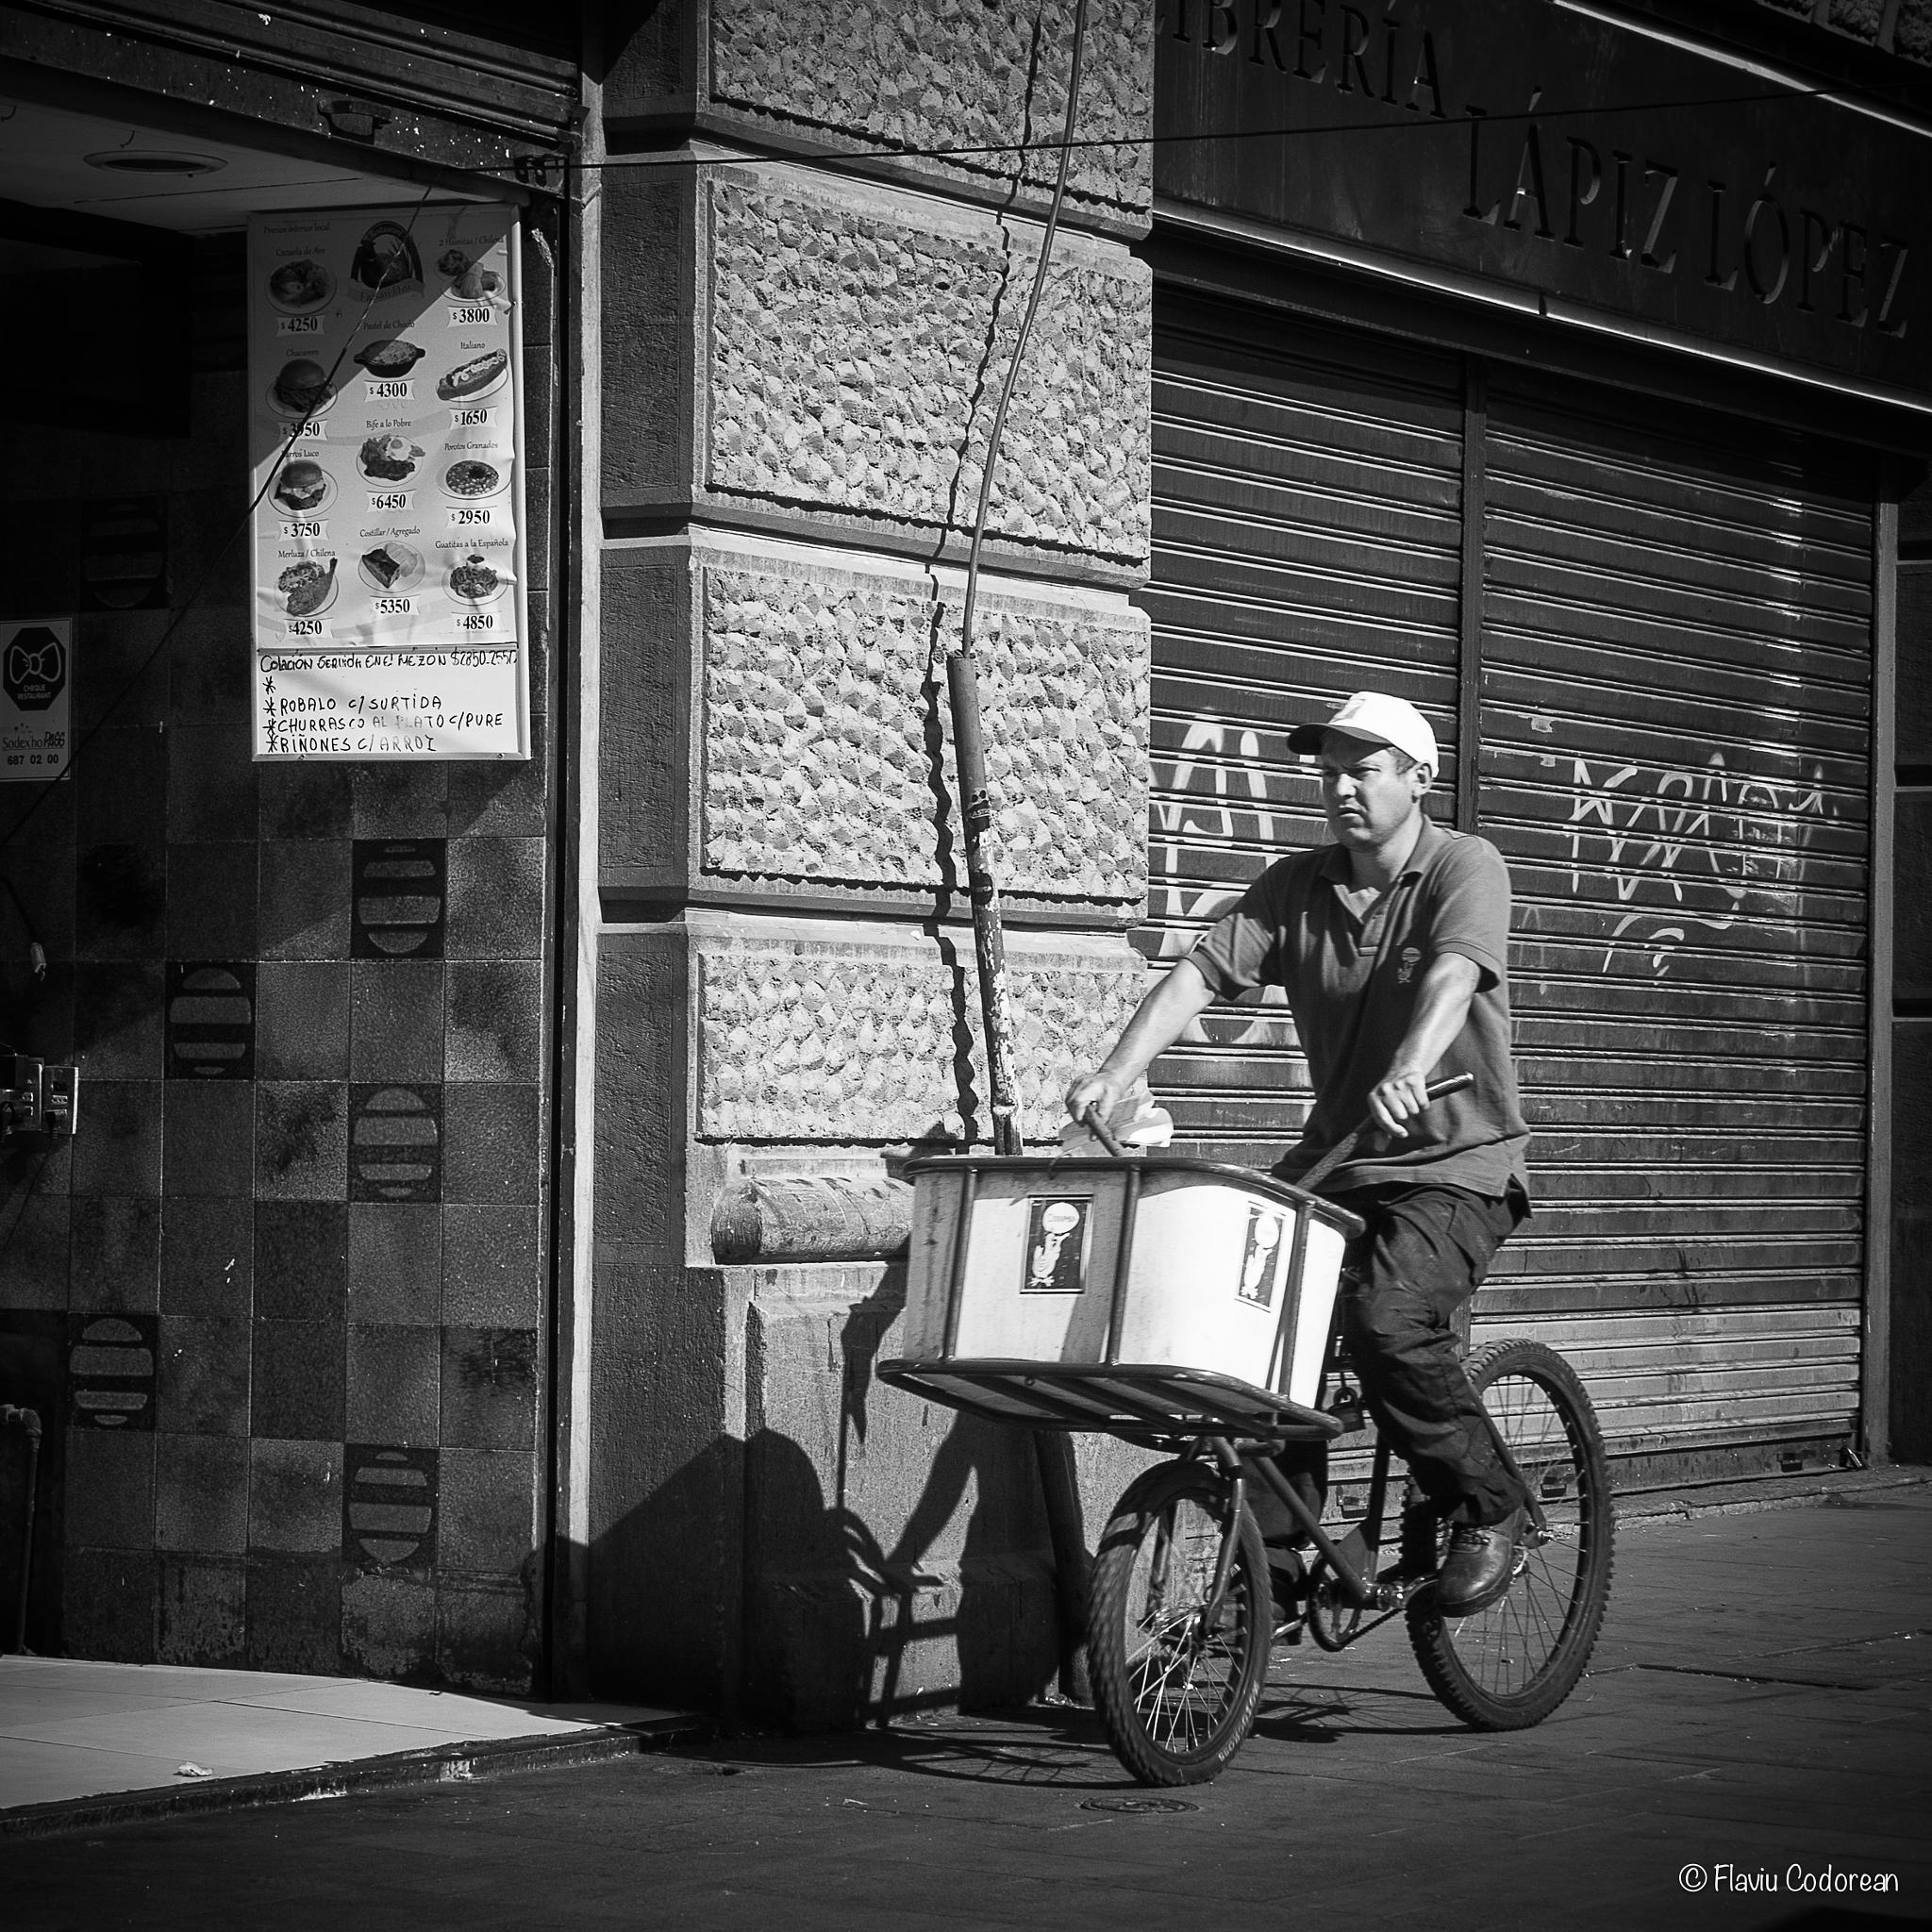 Morning activities - Delivery man by FlaviuCodorean